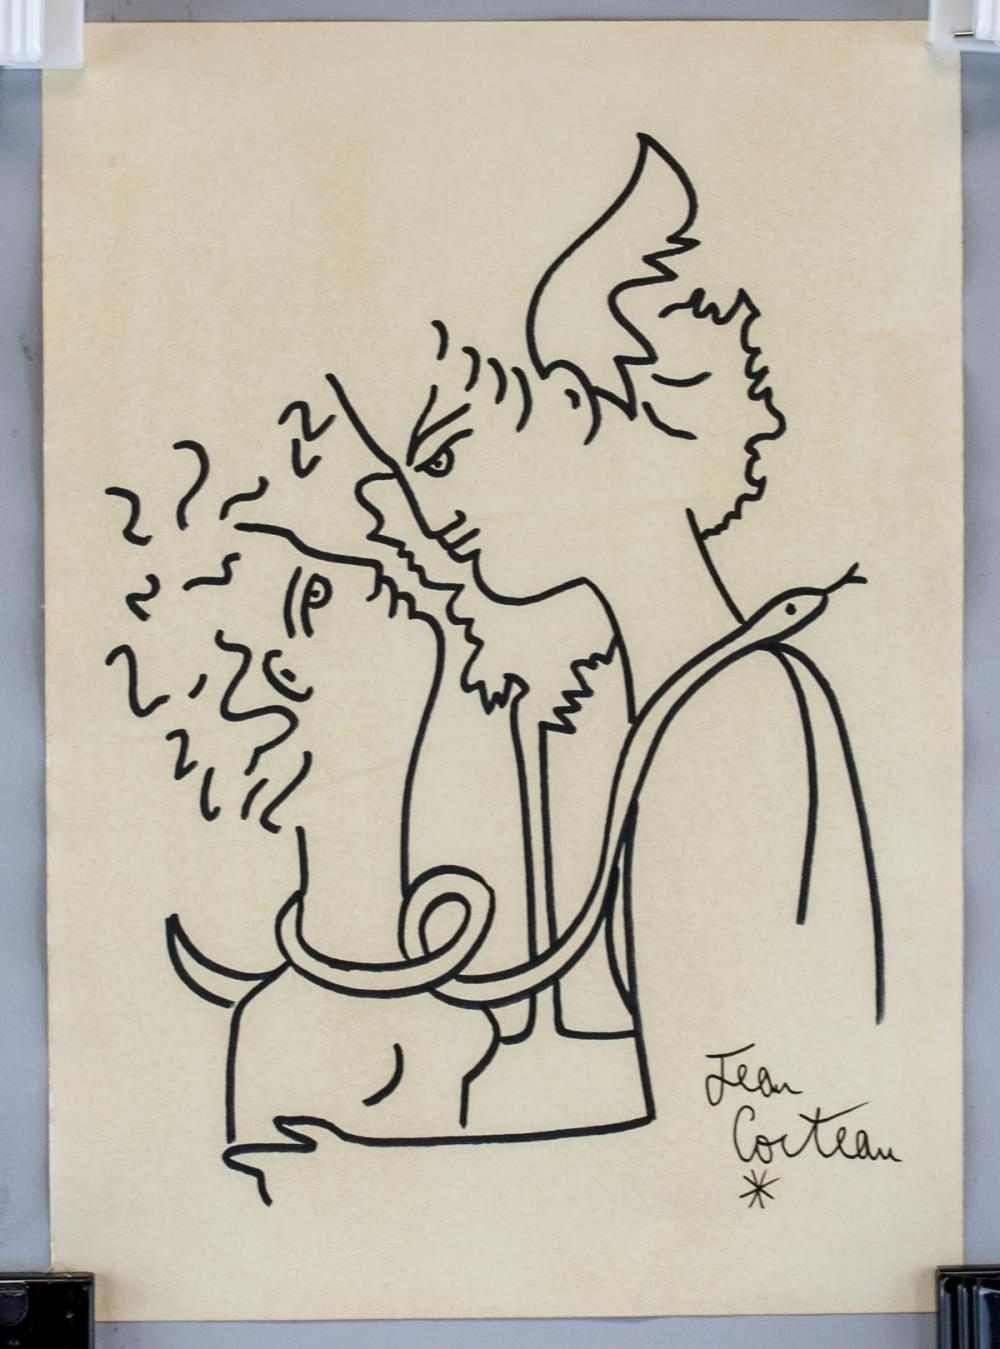 Lot 10: Jean Cocteau French Surrealist Marker on Paper